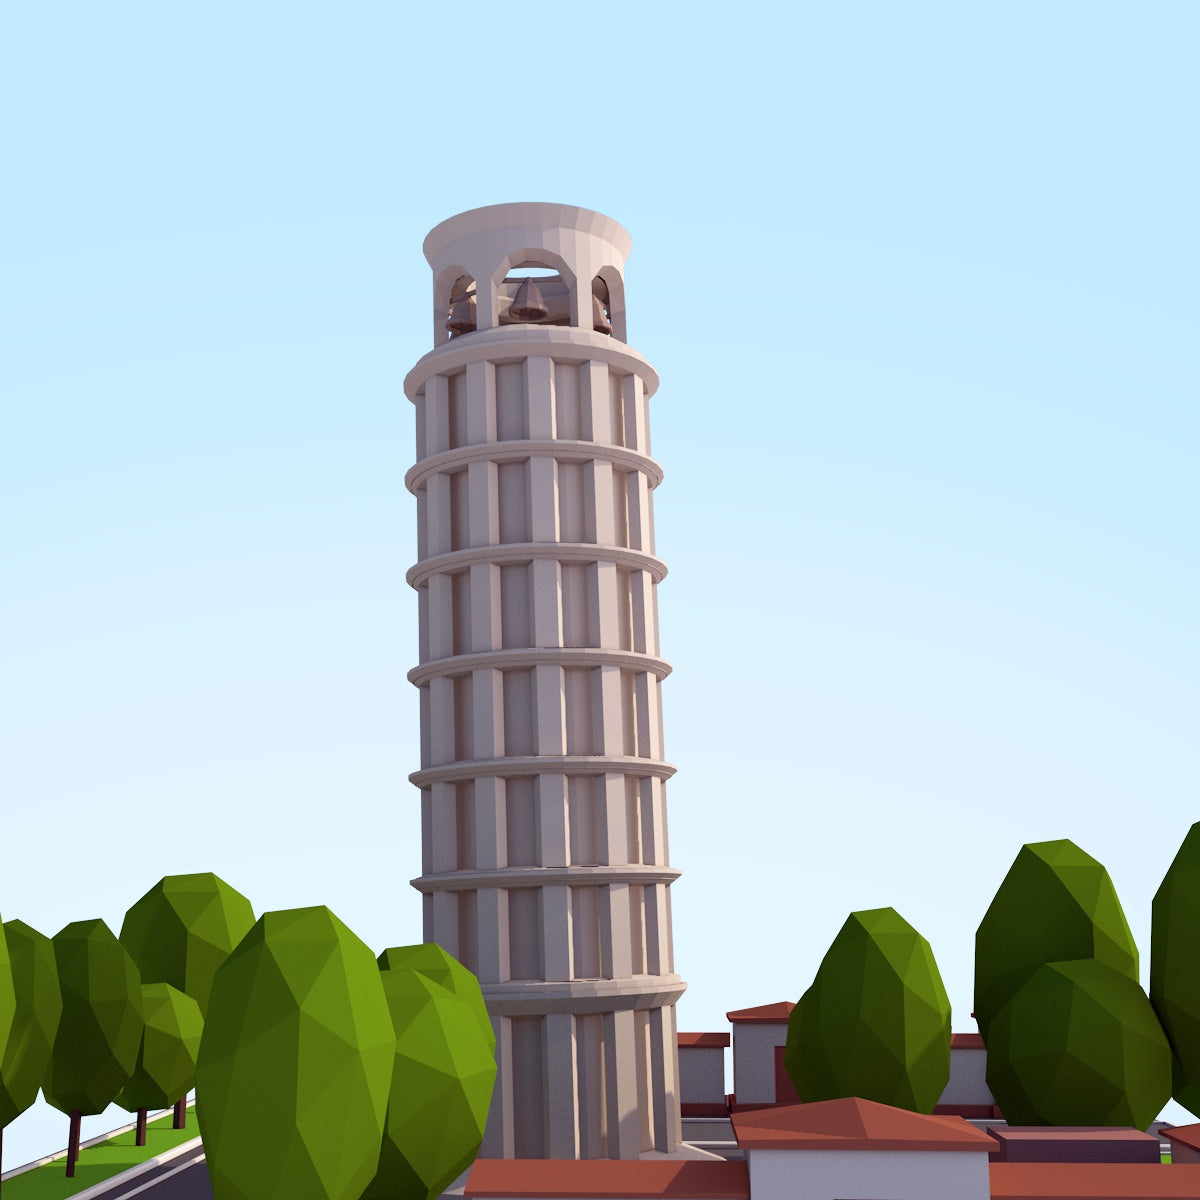 Buildings - Low Poly Tower Of Pisa - Anton Moek